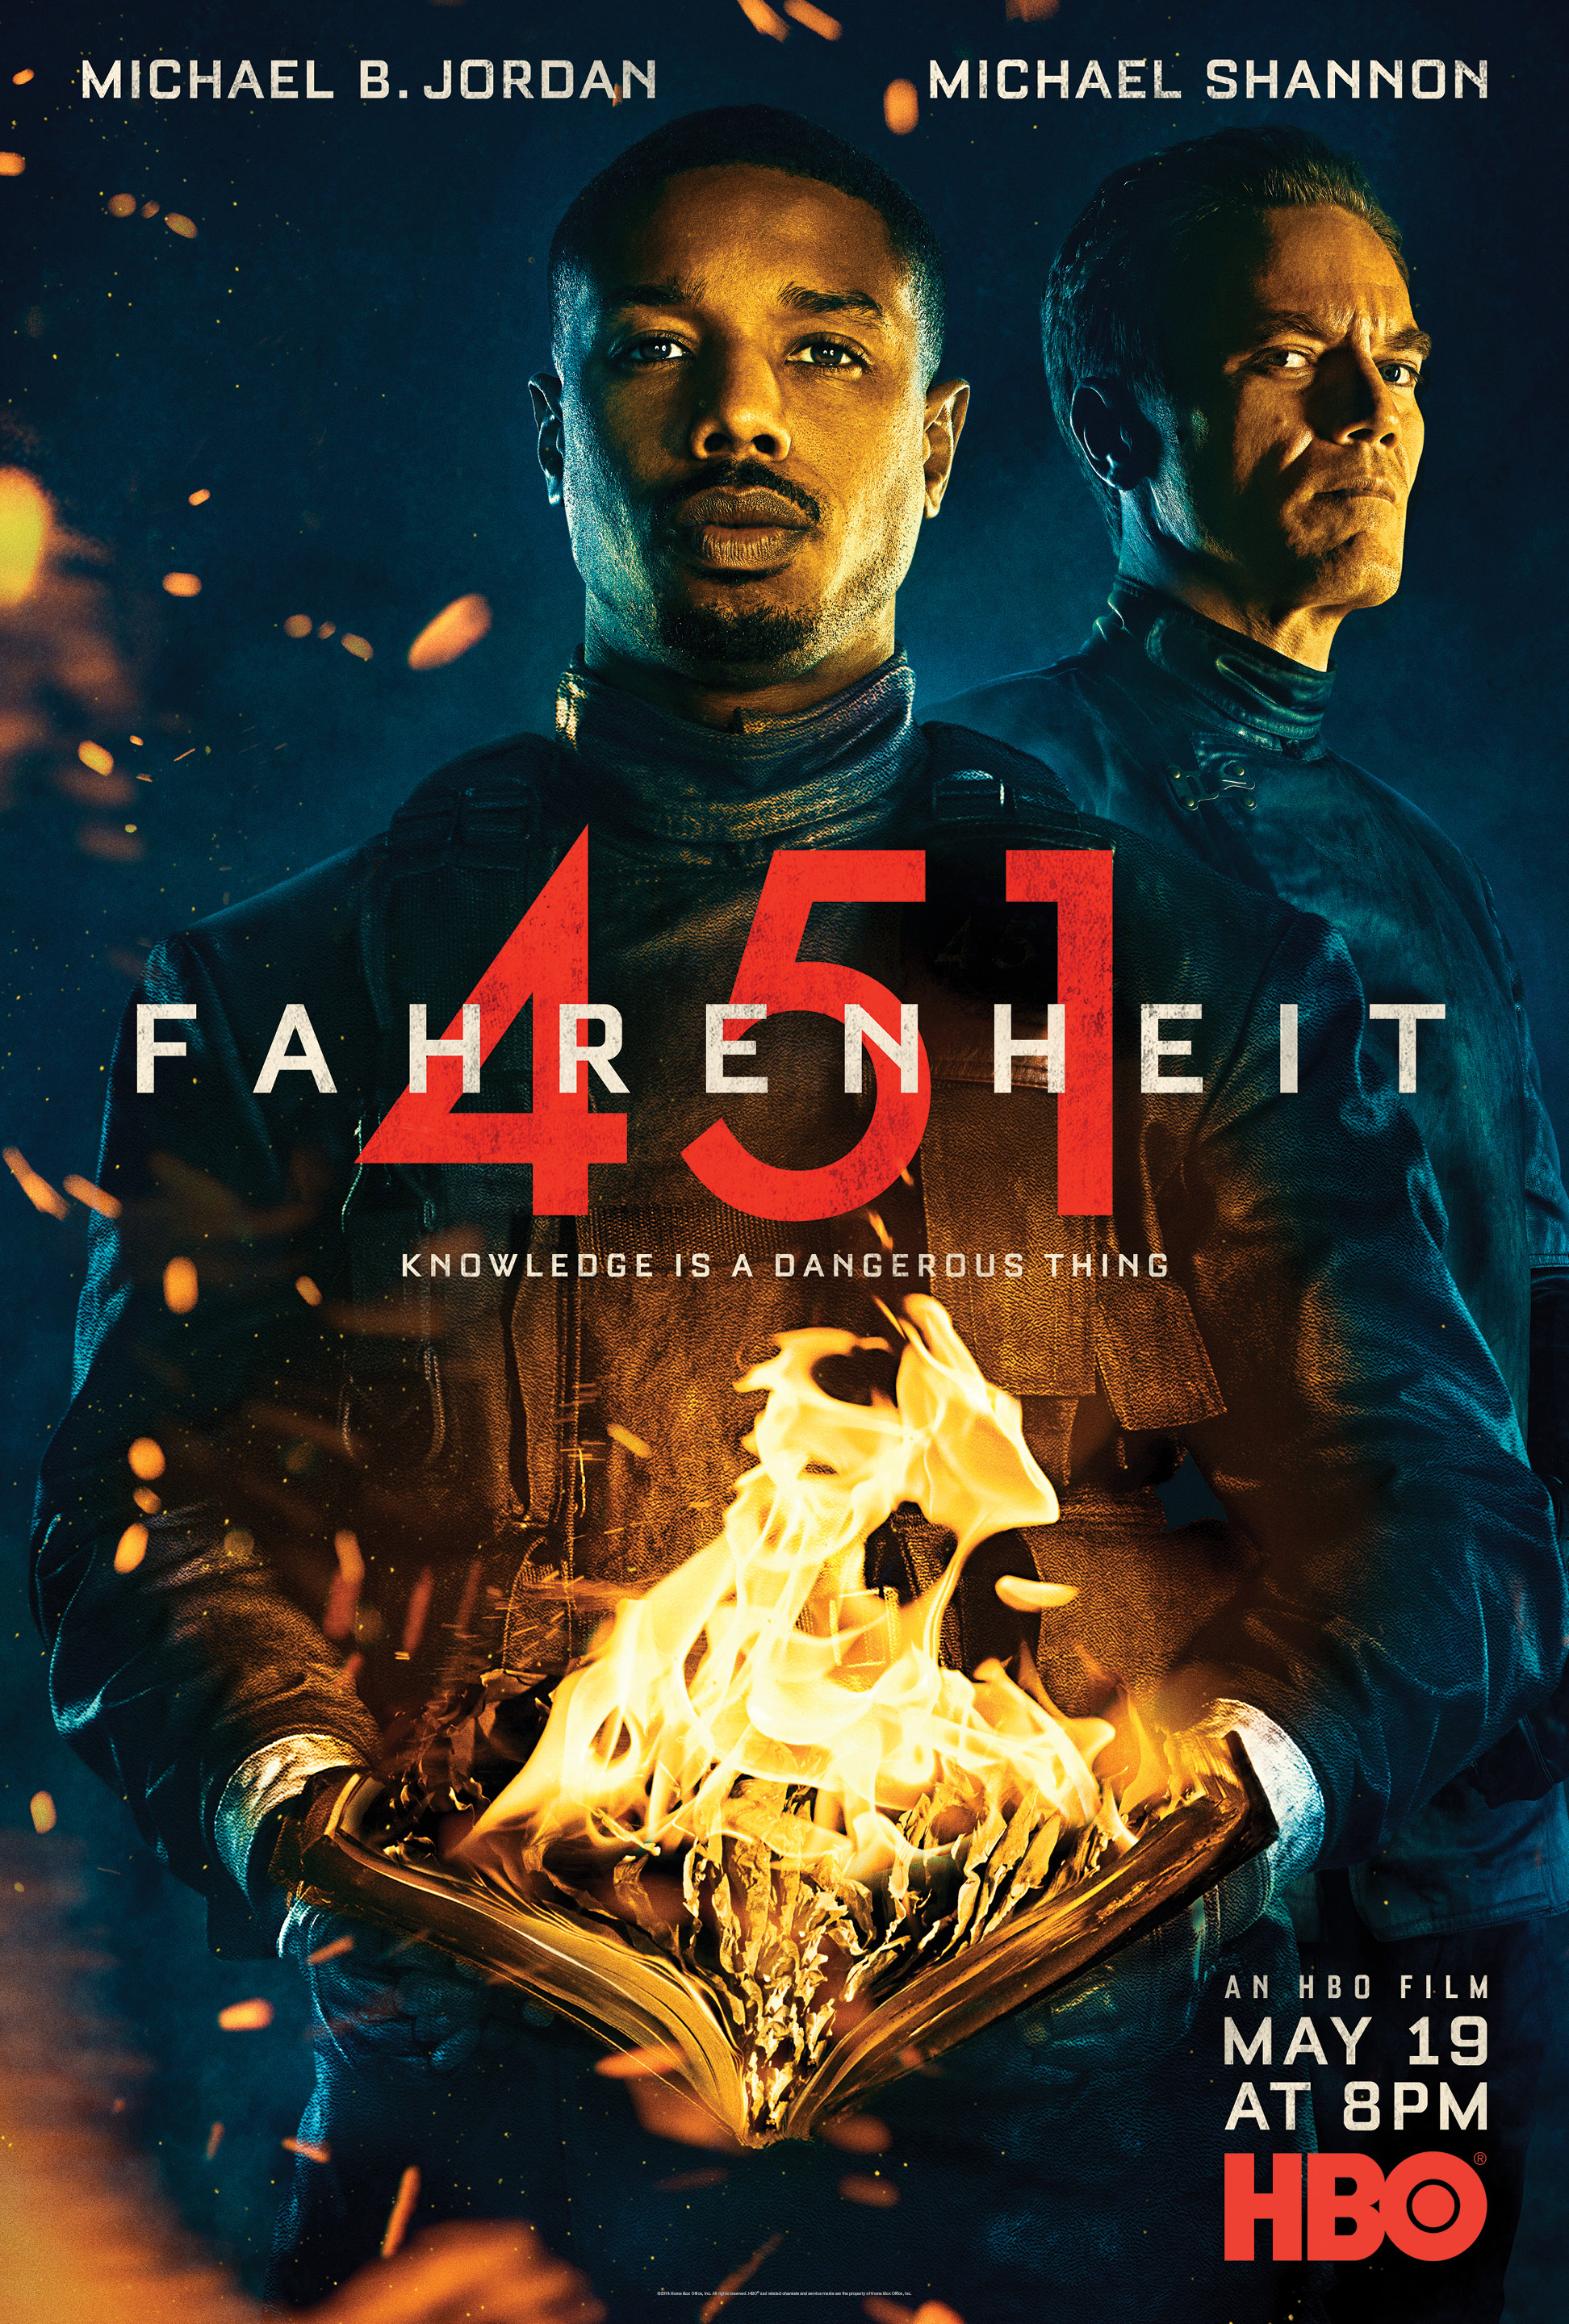 Fahrenheit 451 film review Cannes 2018: Michael B Jordan and Michael Shannon take on a classic